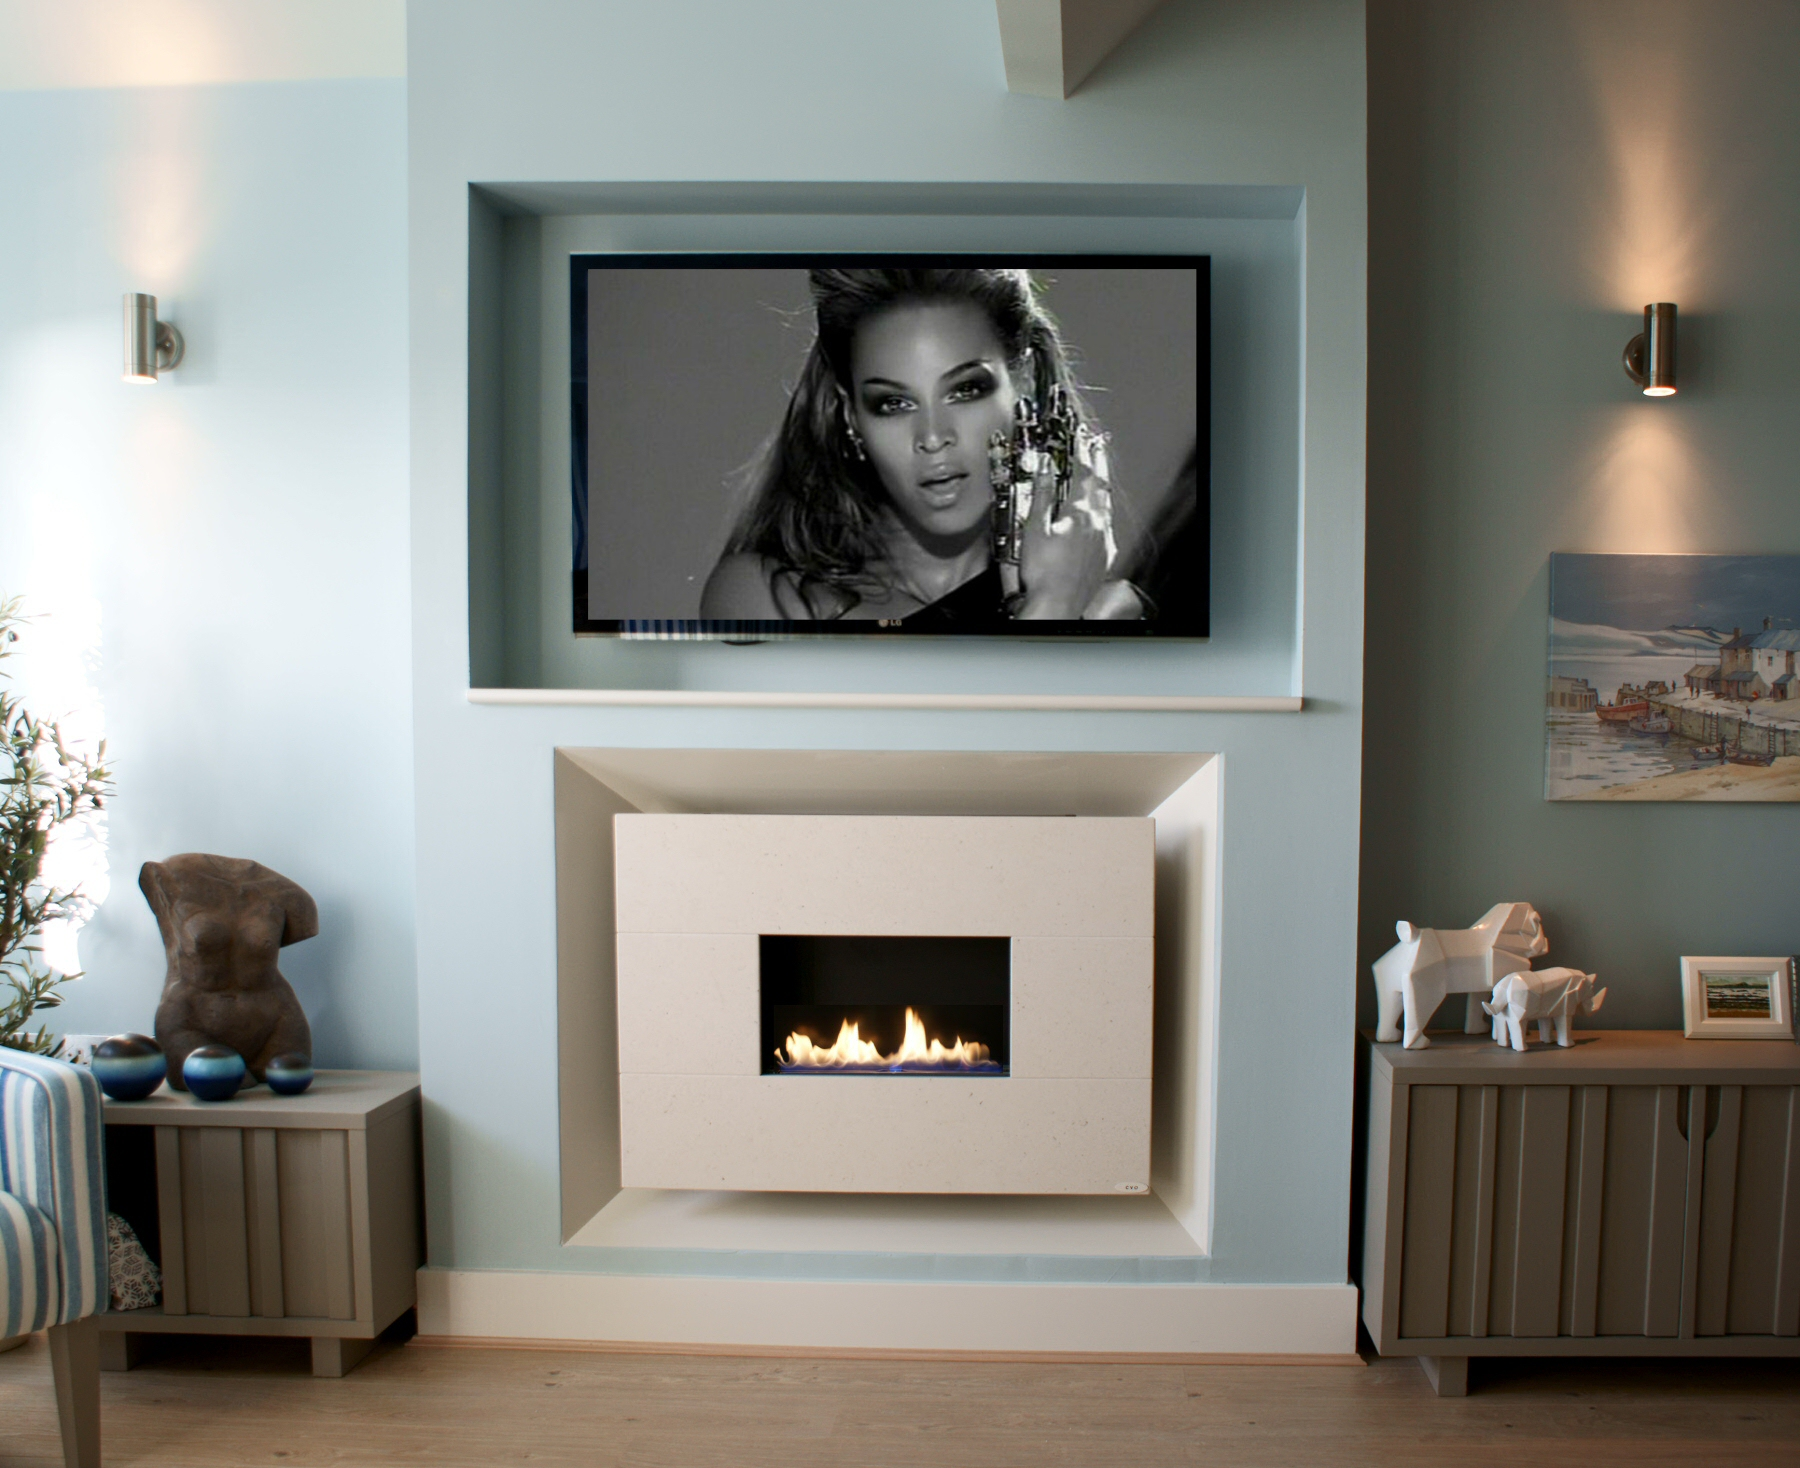 Recessed Flueless Gas Fireplace With Tv Above Image